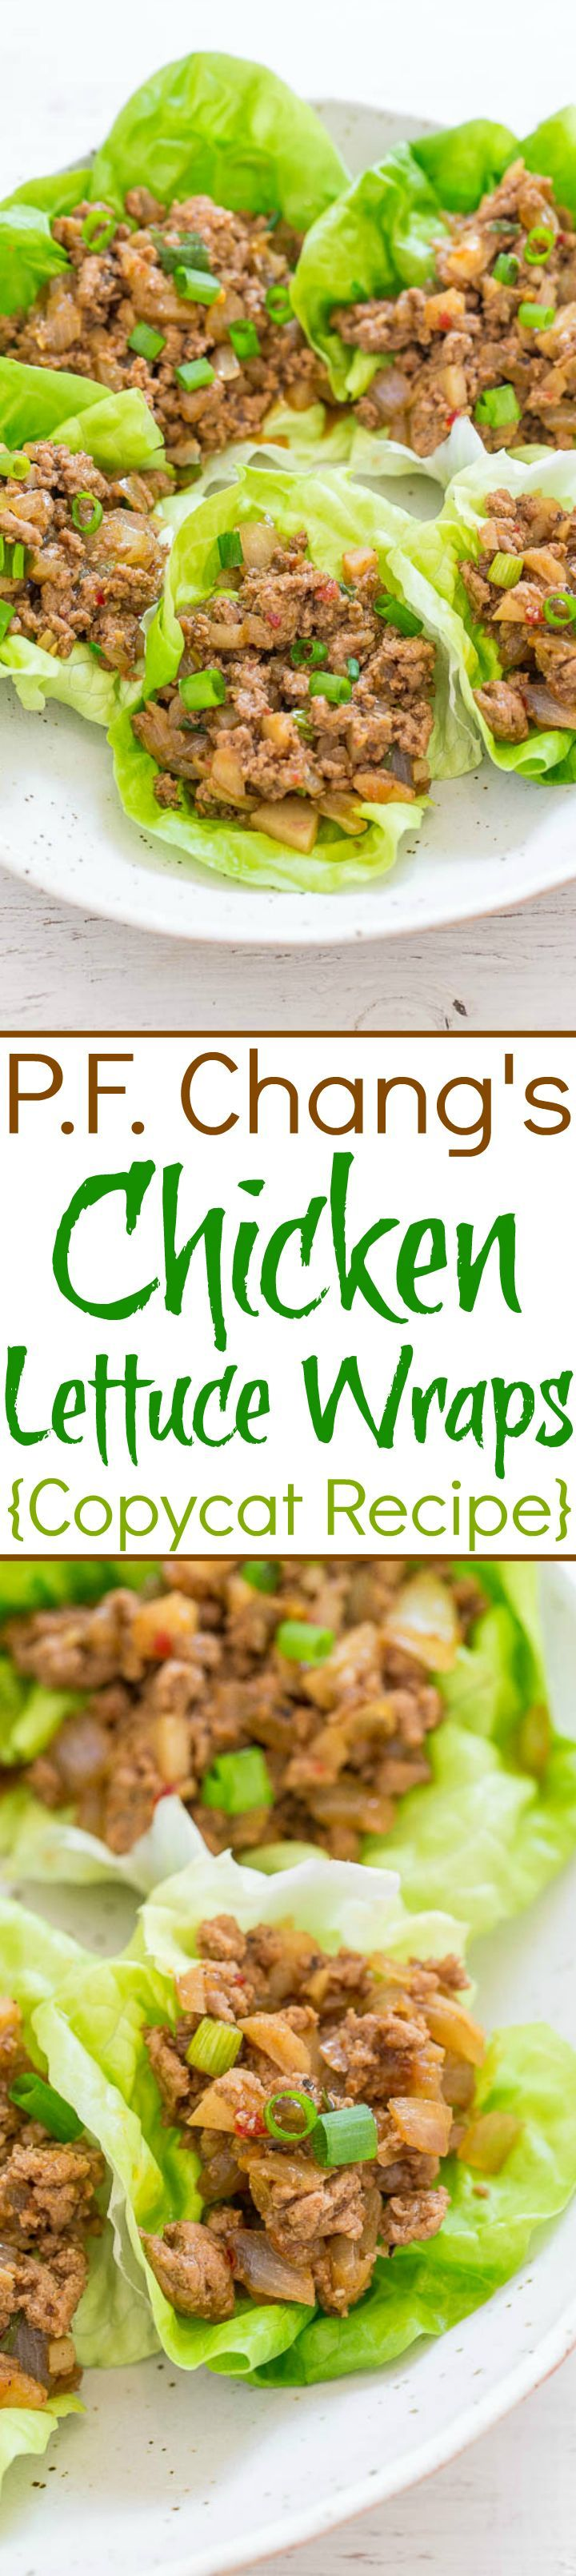 P.F. Chang's Chicken Lettuce Wraps {Copycat Recipe} - Averie Cooks